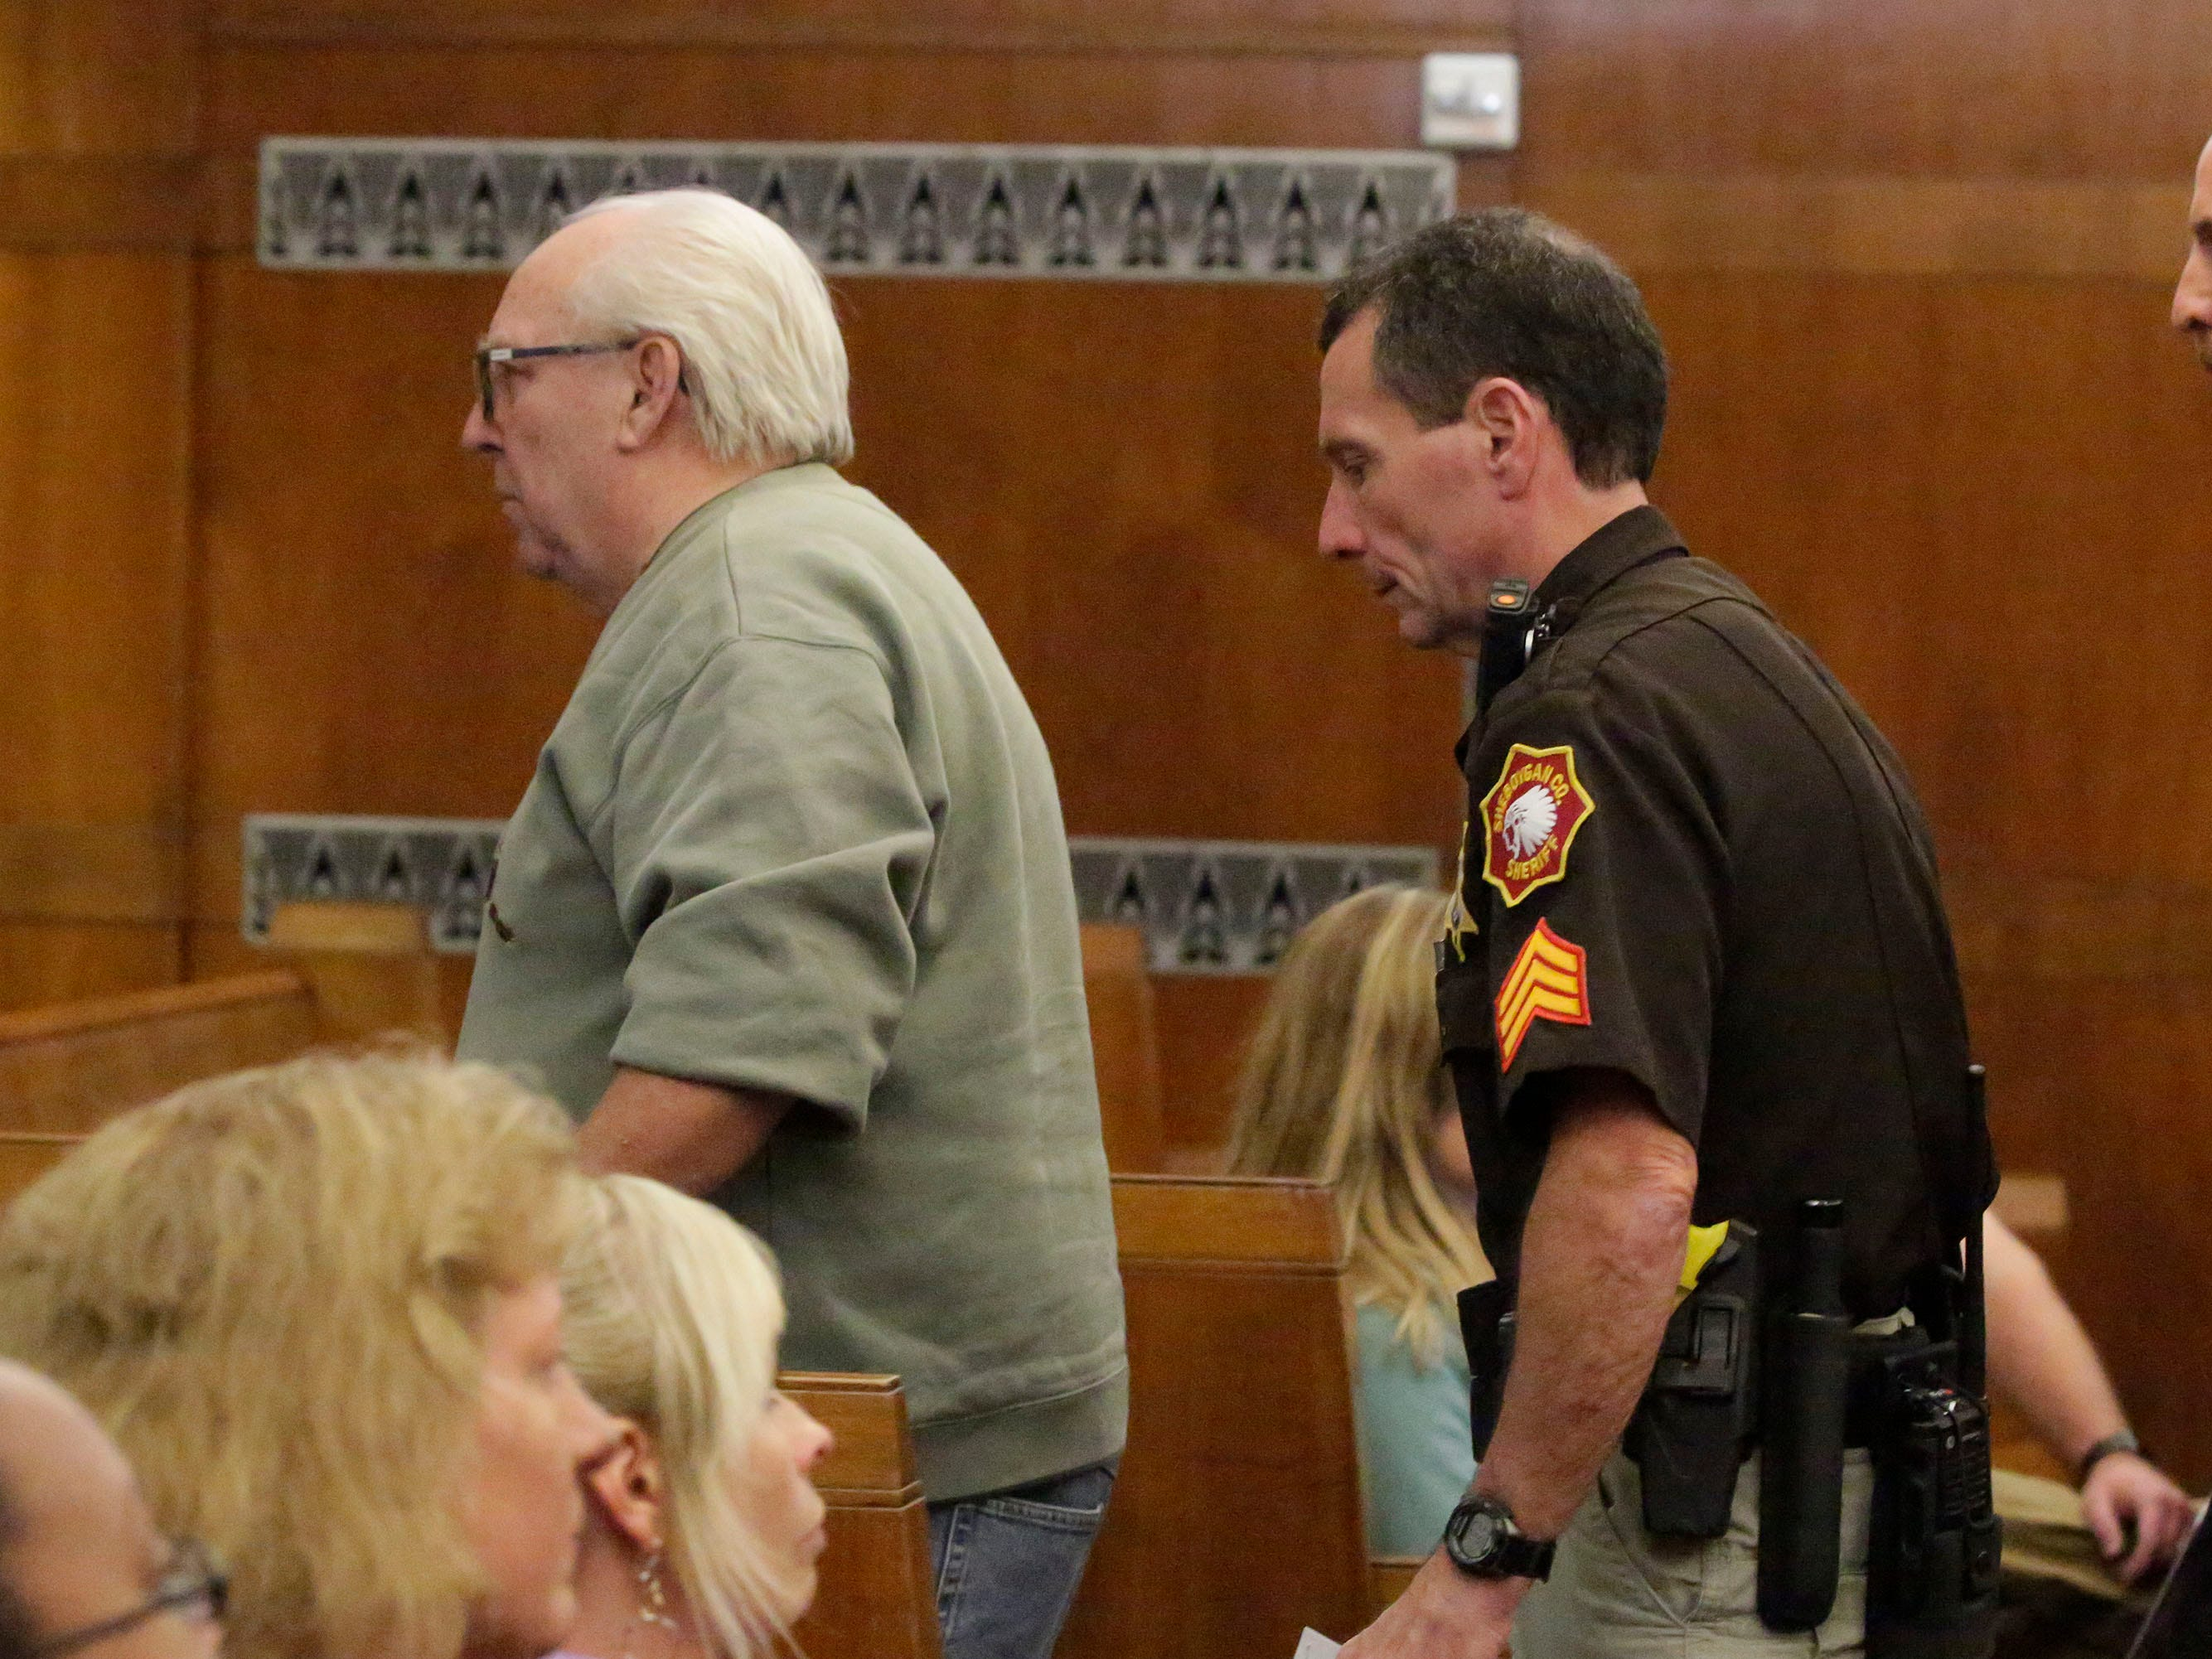 Theodore Tuchel, left, exits Sheboygan County Court Branch 1, Friday, October 5, 2018, in Sheboygan, Wis.  Tuchel was ejected from the courtroom by Stengel.  Tuchel was speaking on behalf of his daughter Christy Rose Tuchel, who ran Kinship Companions kennel where dead dogs were discovered in an unplugged freezer.